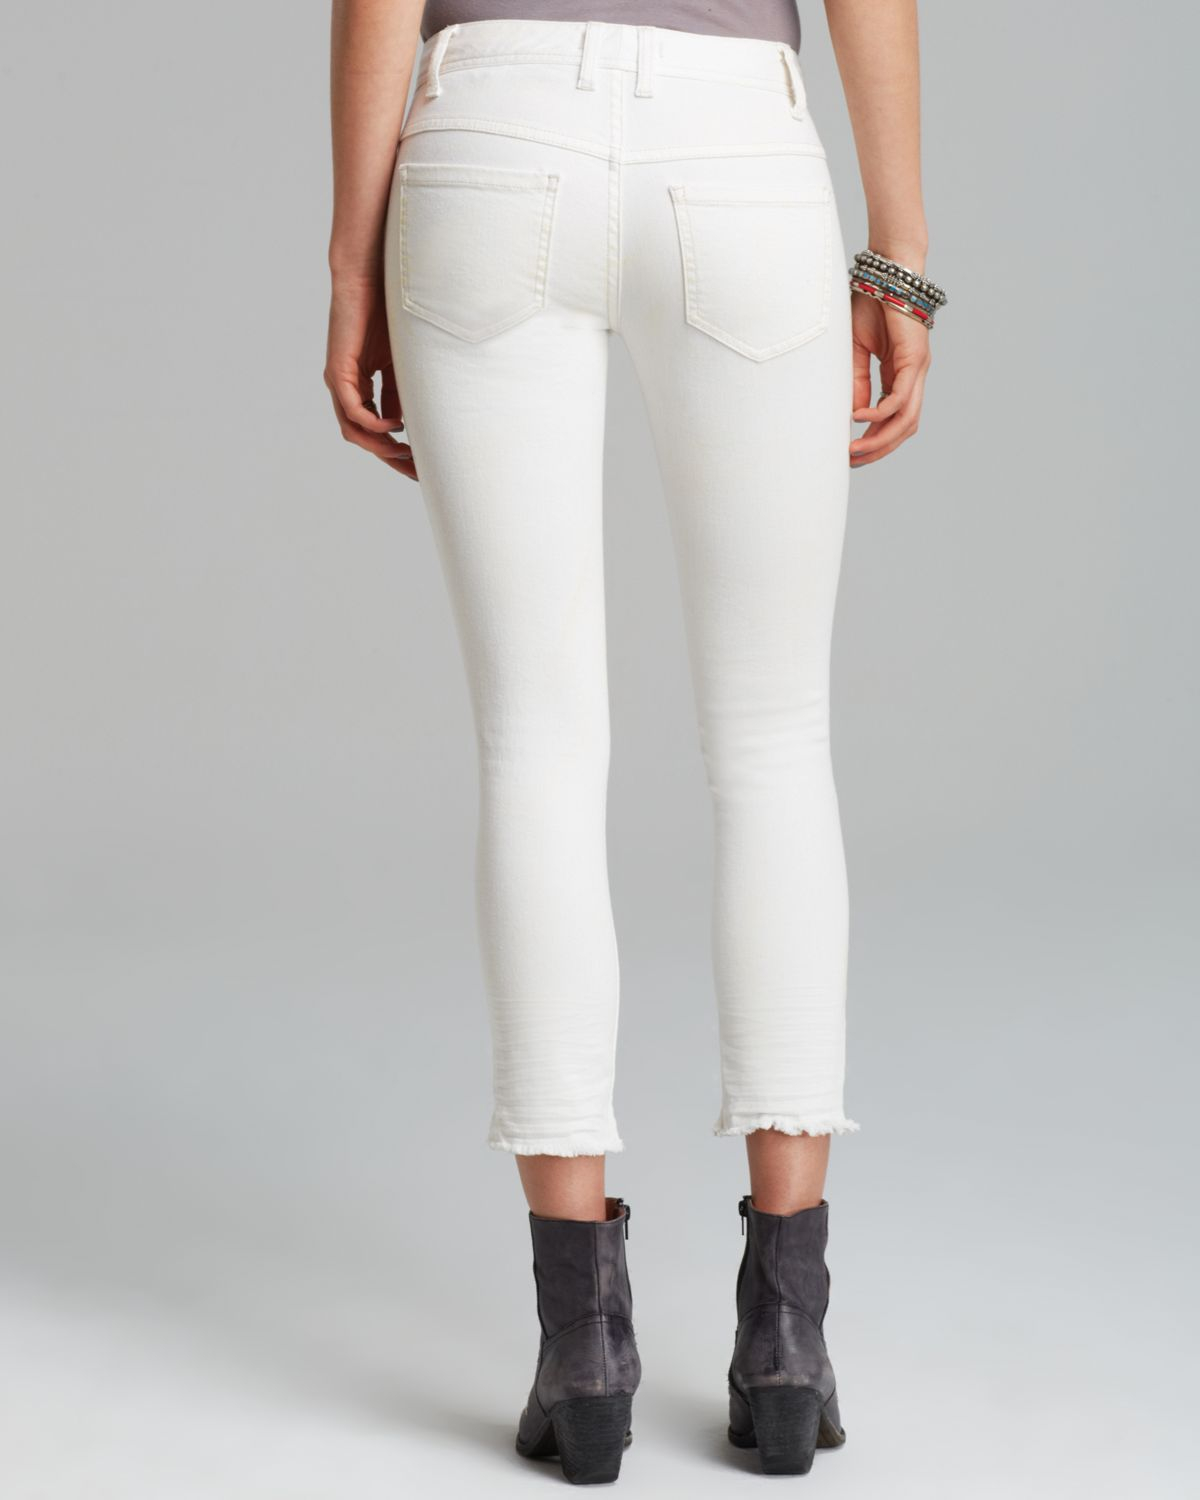 Free people Jeans - Skinny Destroyed Ankle In White in White | Lyst